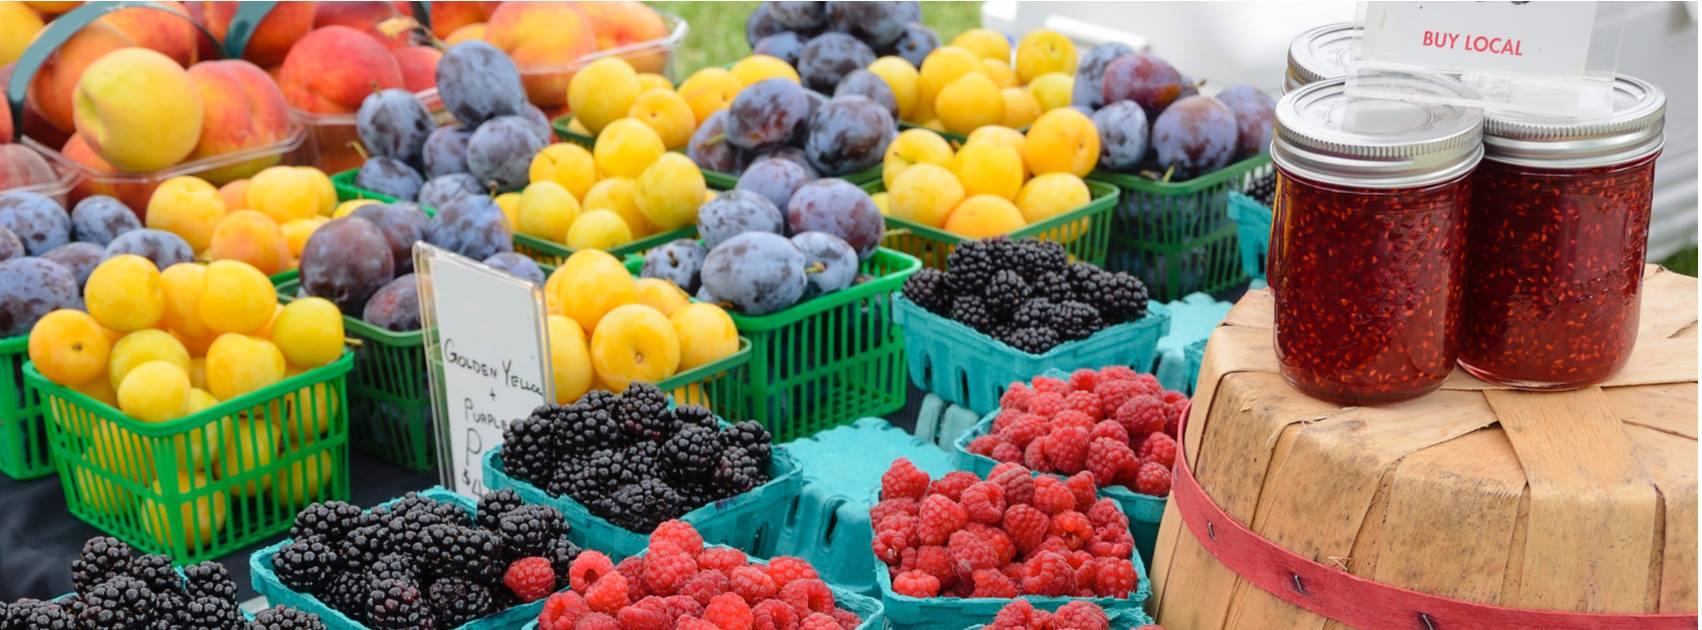 Gurnee's East Grand Farmers Market